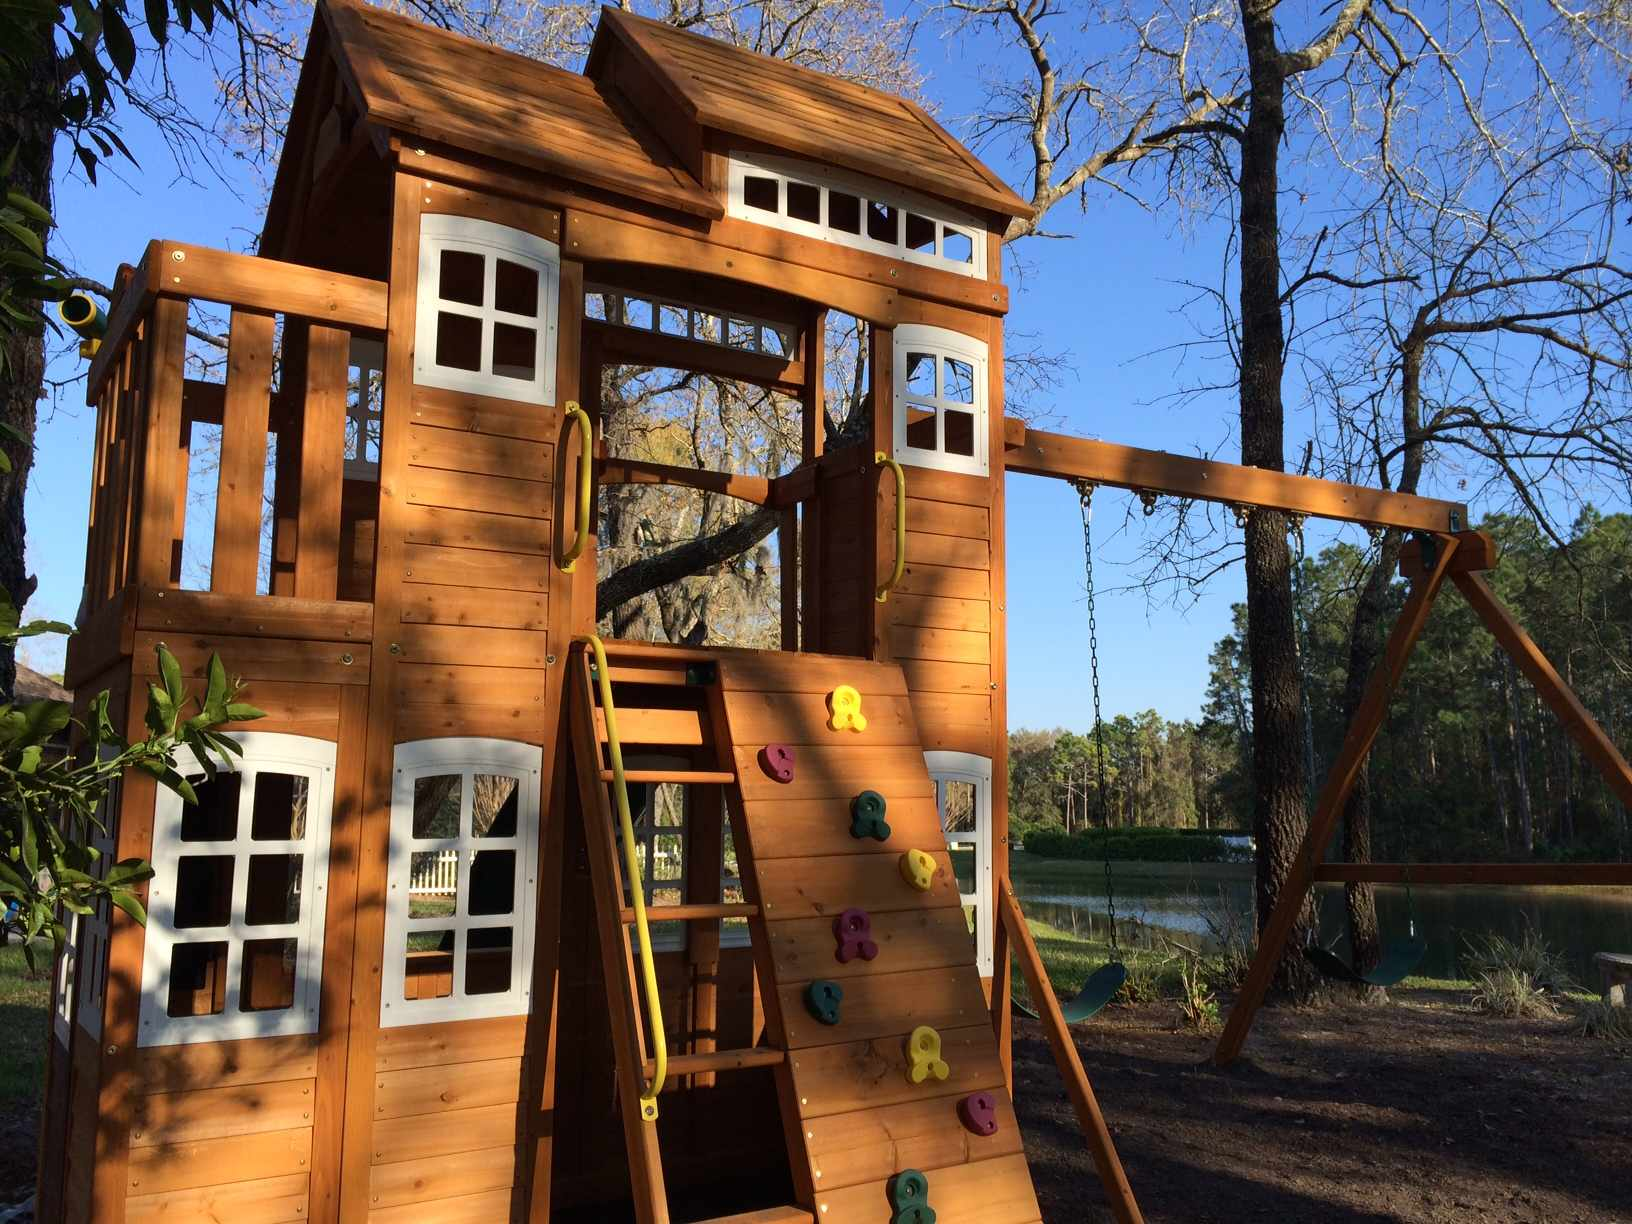 Assemblyreview Mount Forest Lodge Playset By Cedar Summit Assembly Service Ikea Furniture